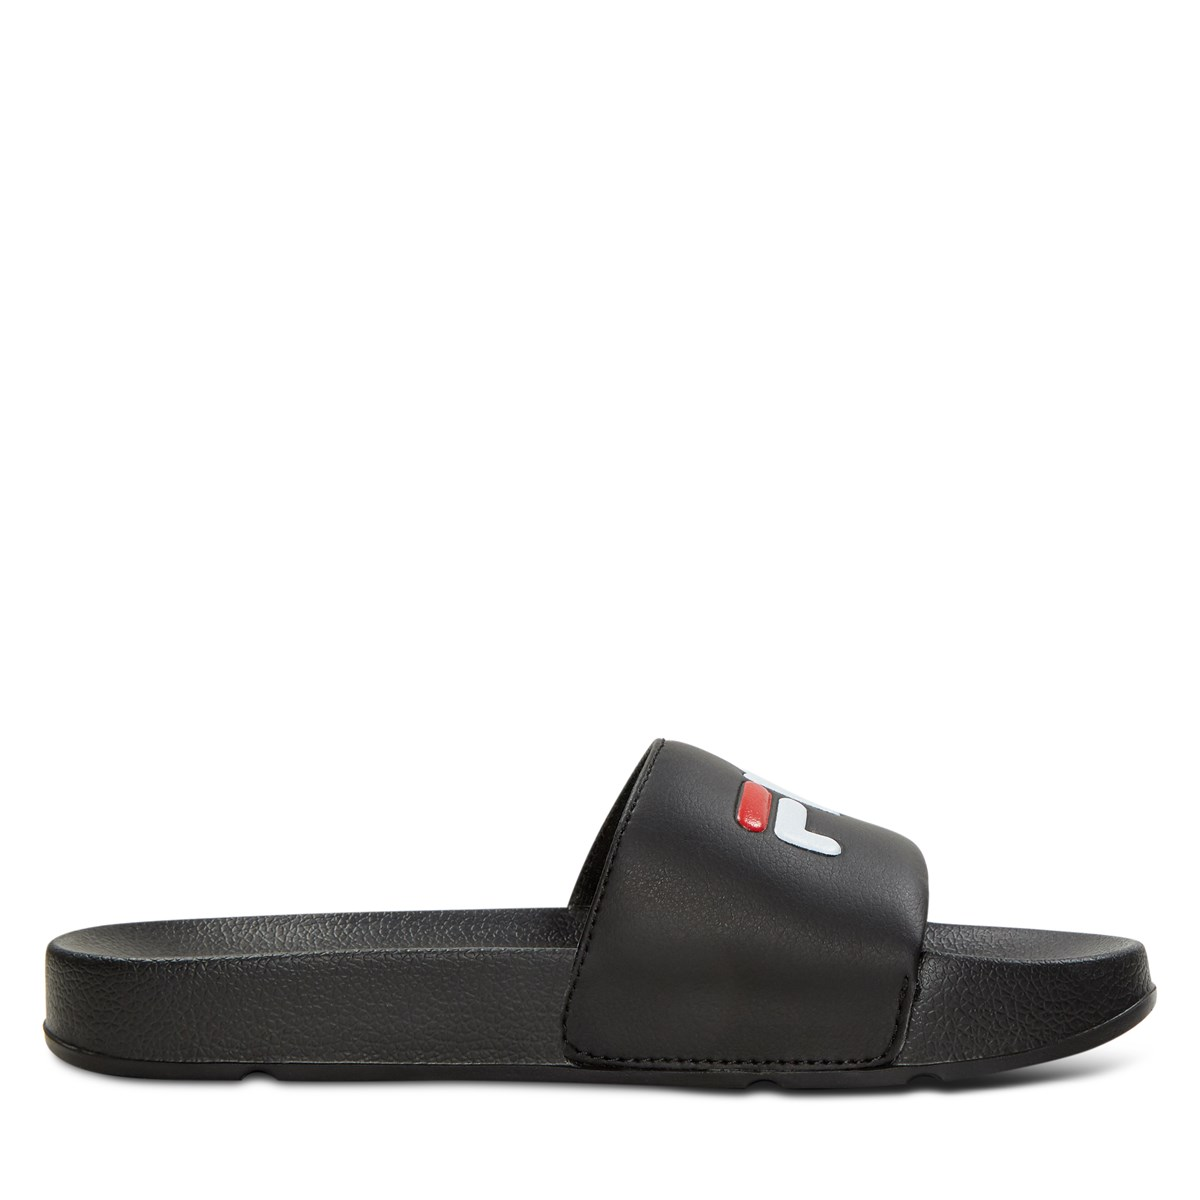 Women's Drifter Slide Sandal in Black